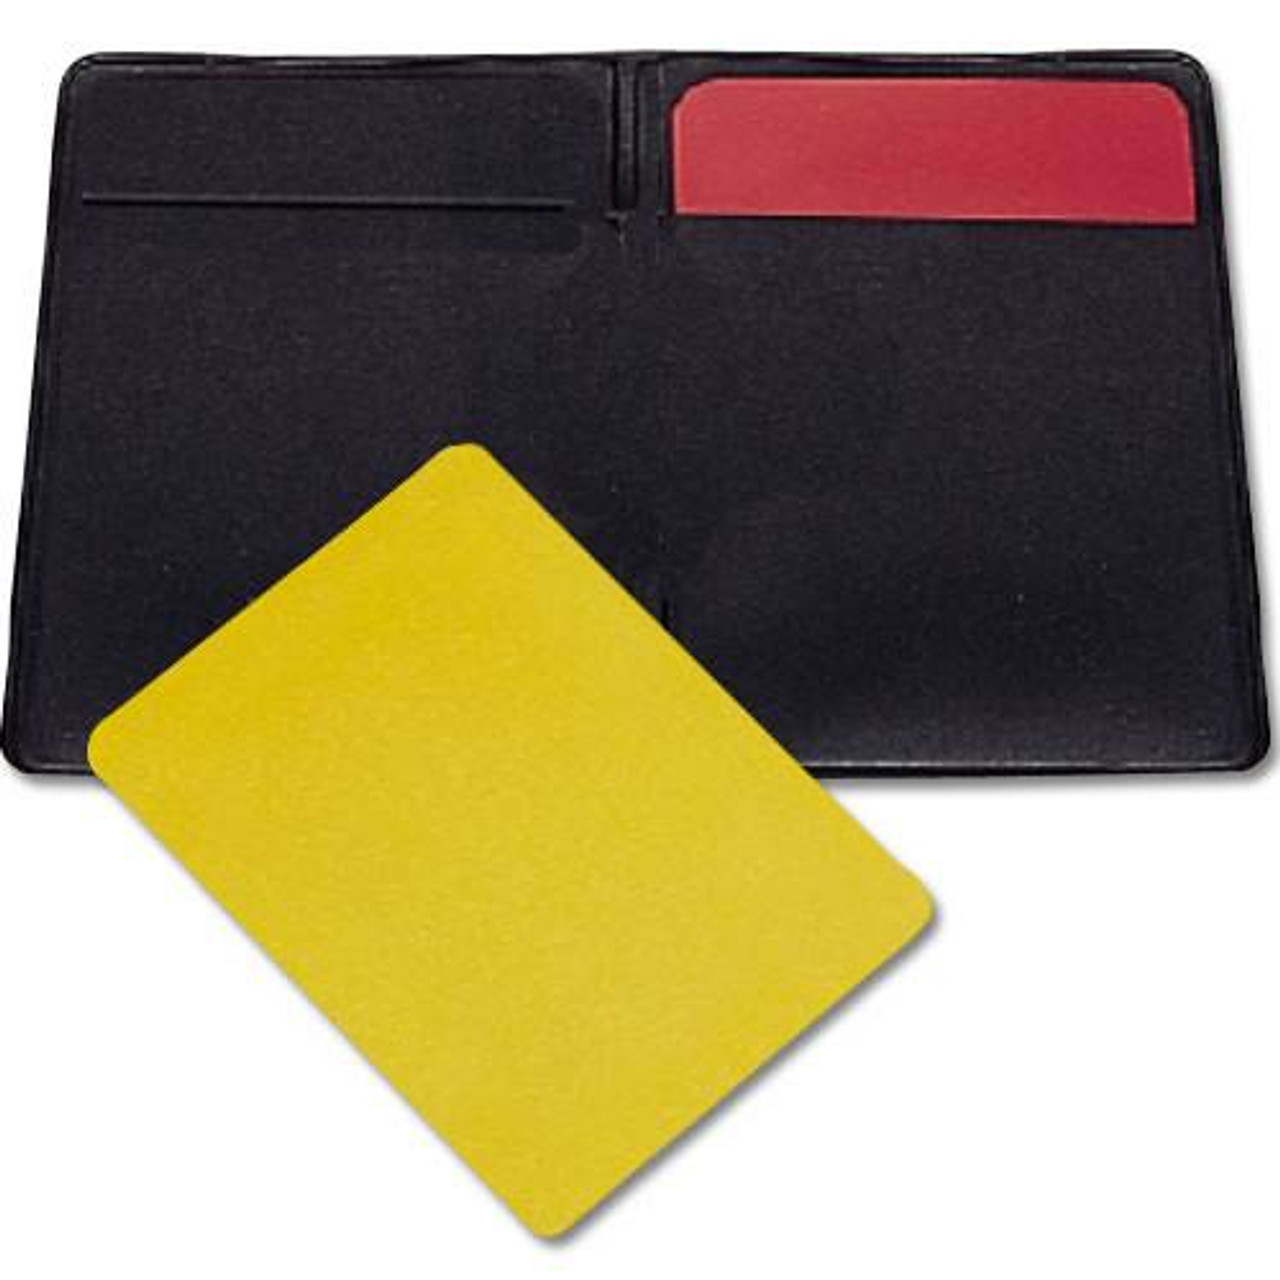 Warning Cards and Wallet